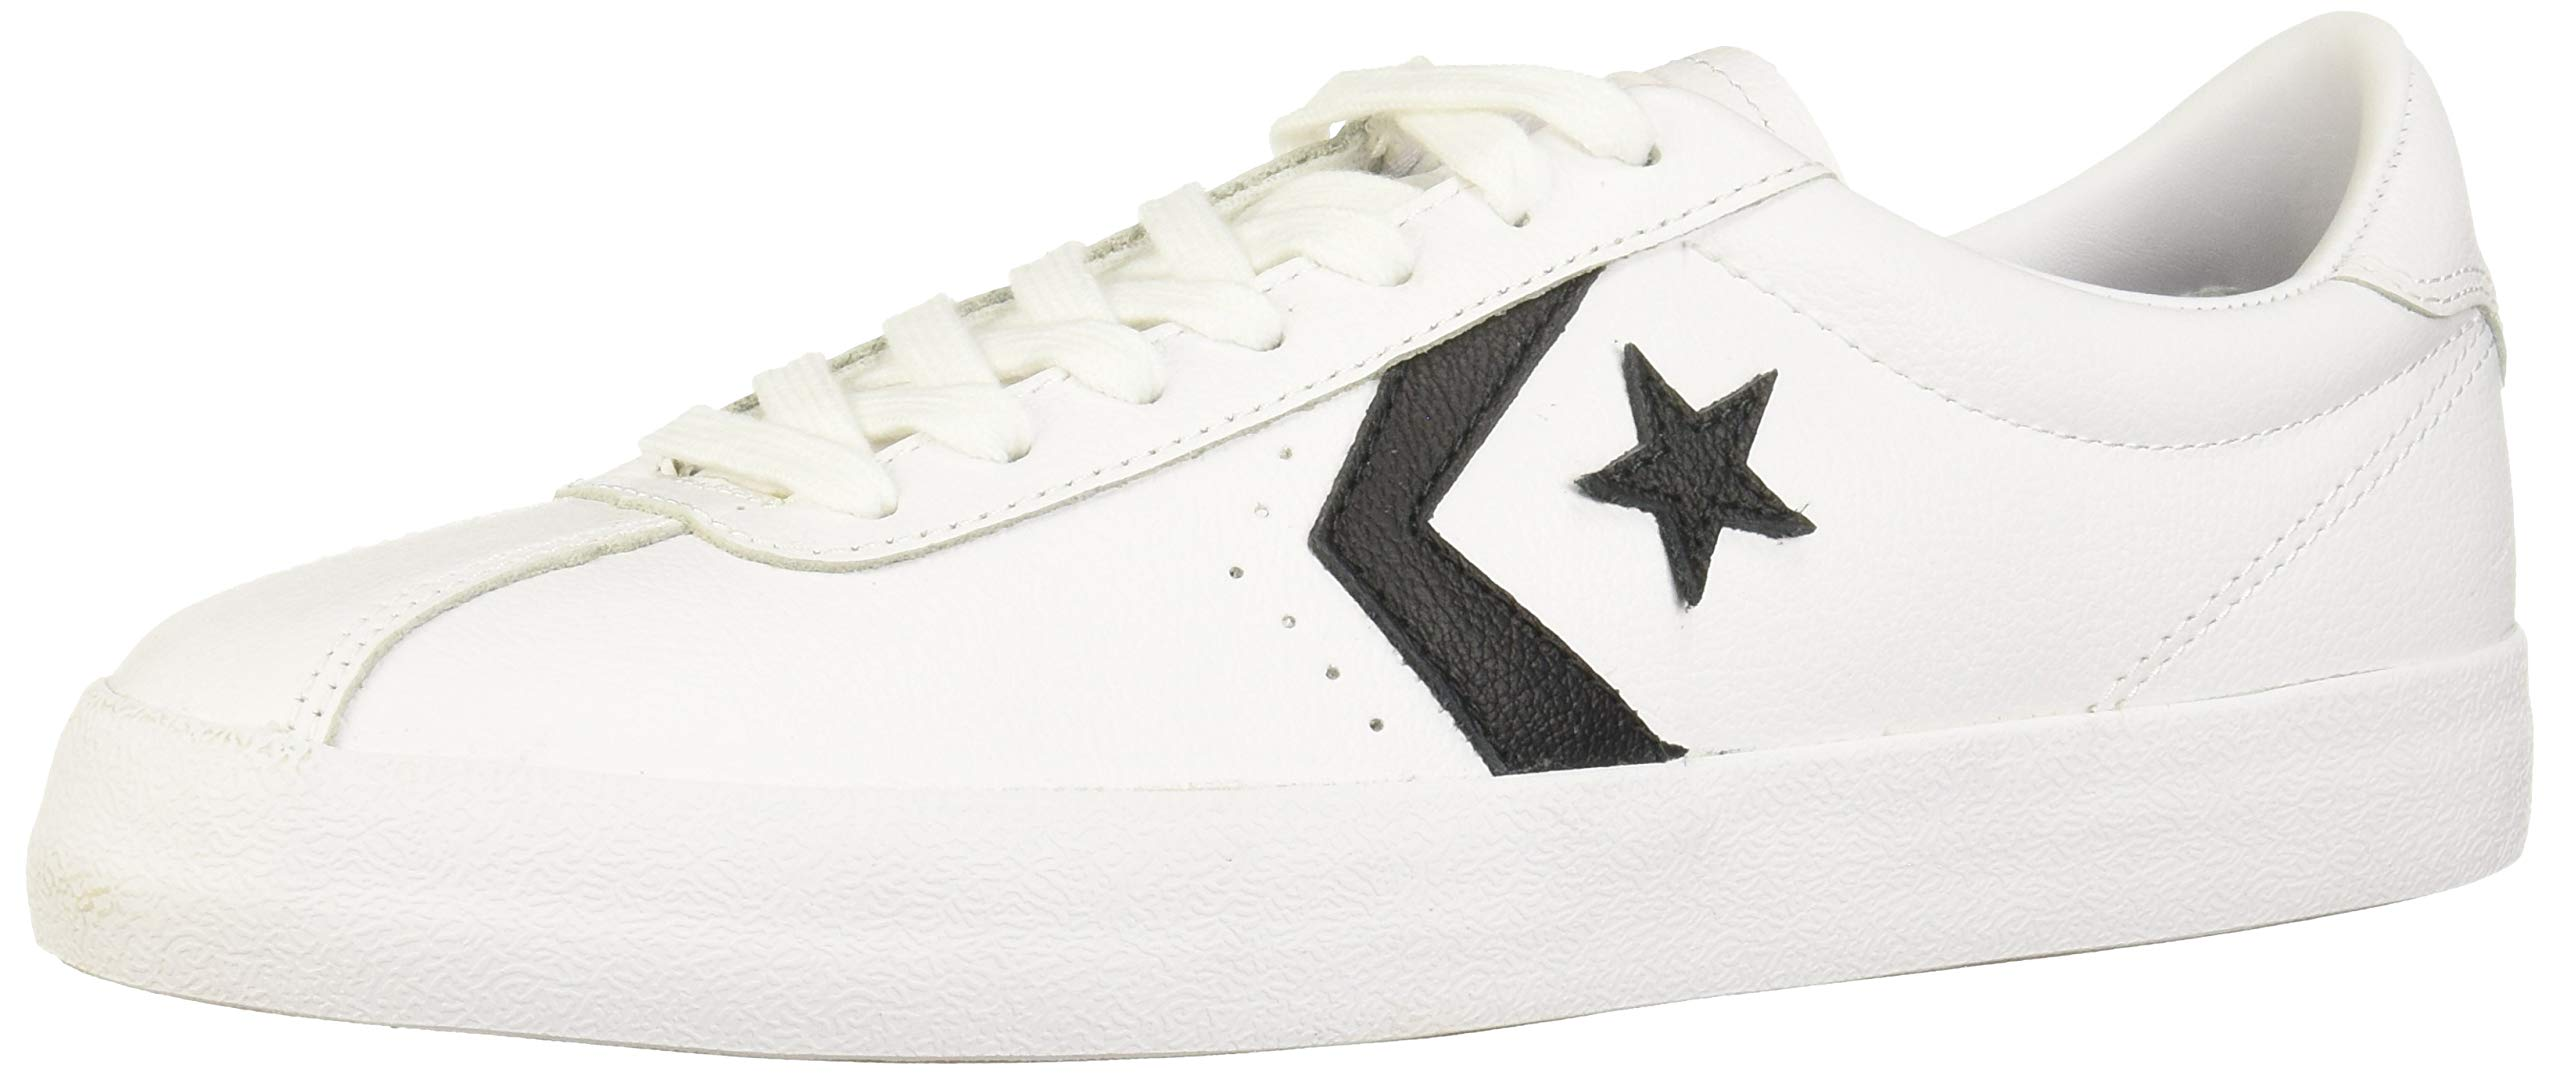 6ad5f327d330 Galleon - Converse Unisex Breakpoint Ox Low Top Sneakers White/Black/White